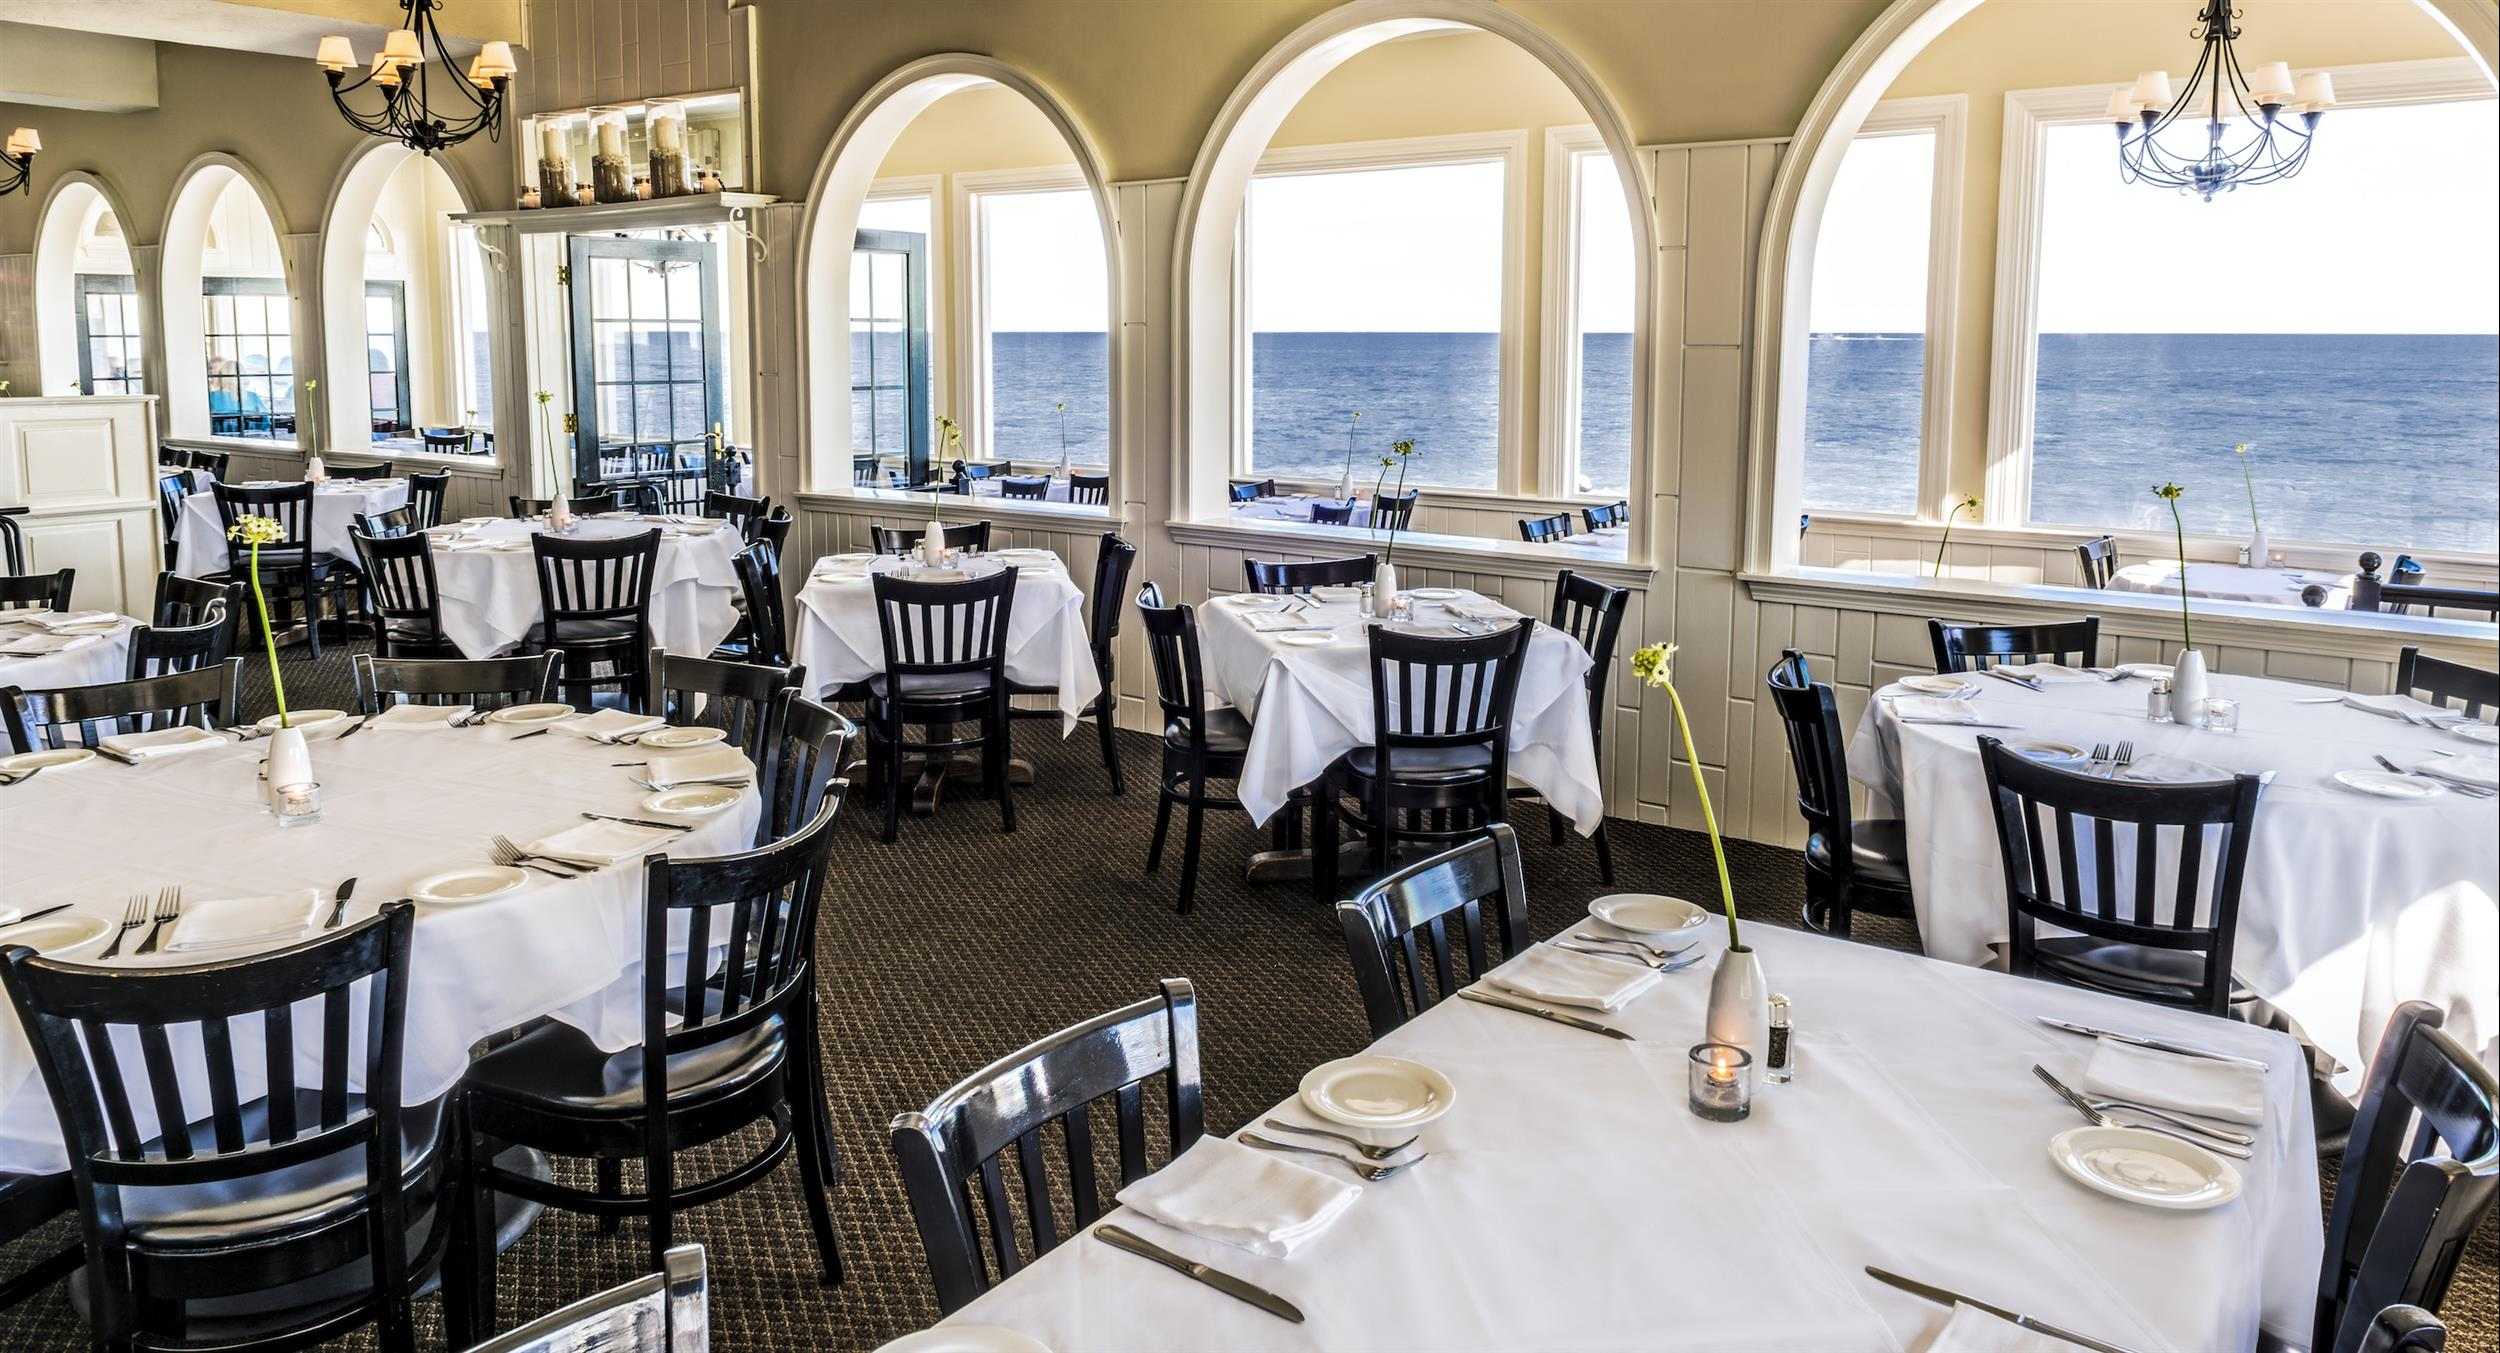 The Ocean House Restaurant